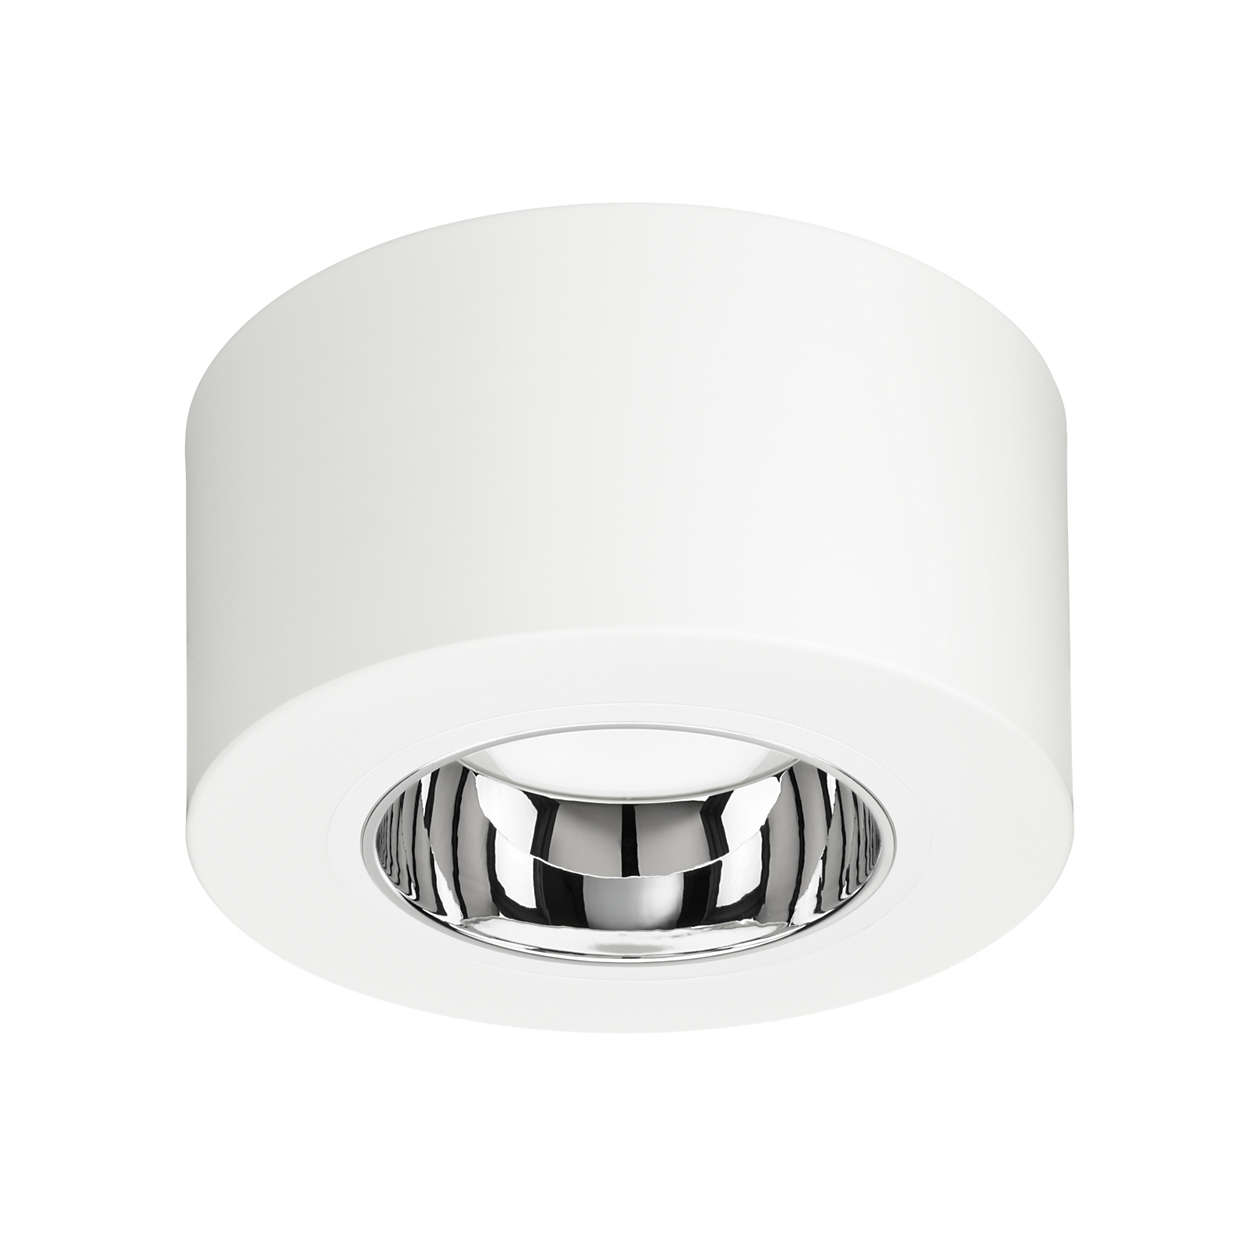 LuxSpace 2 surface-mounted – high efficiency, visual comfort and a stylish design